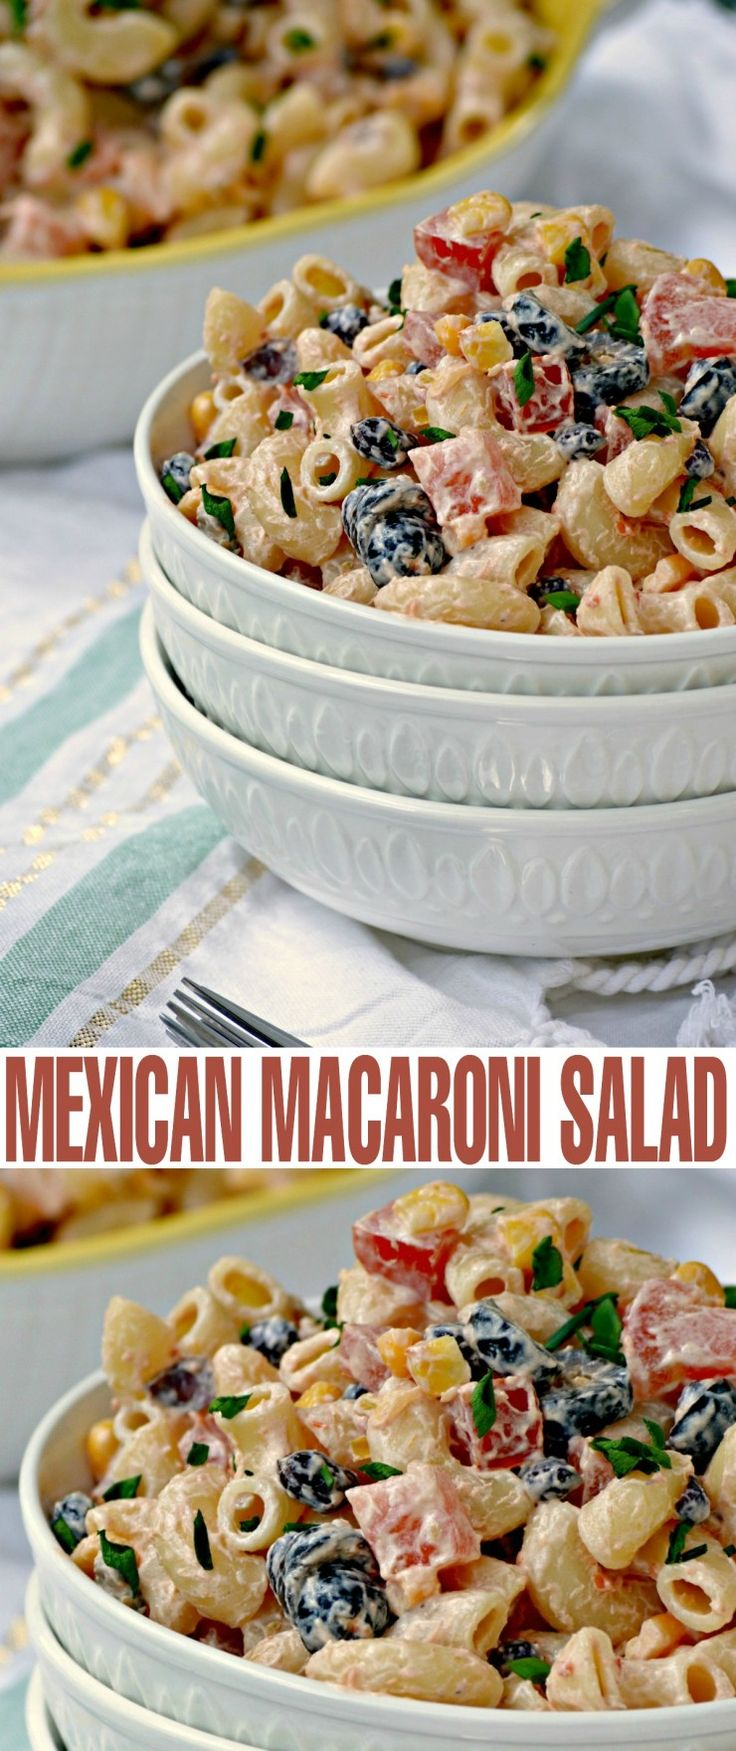 This Mexican Macaroni Salad recipe is a very versatile summer salad perfect for picnics and barbecues. I love serving it at family BBQ's as…